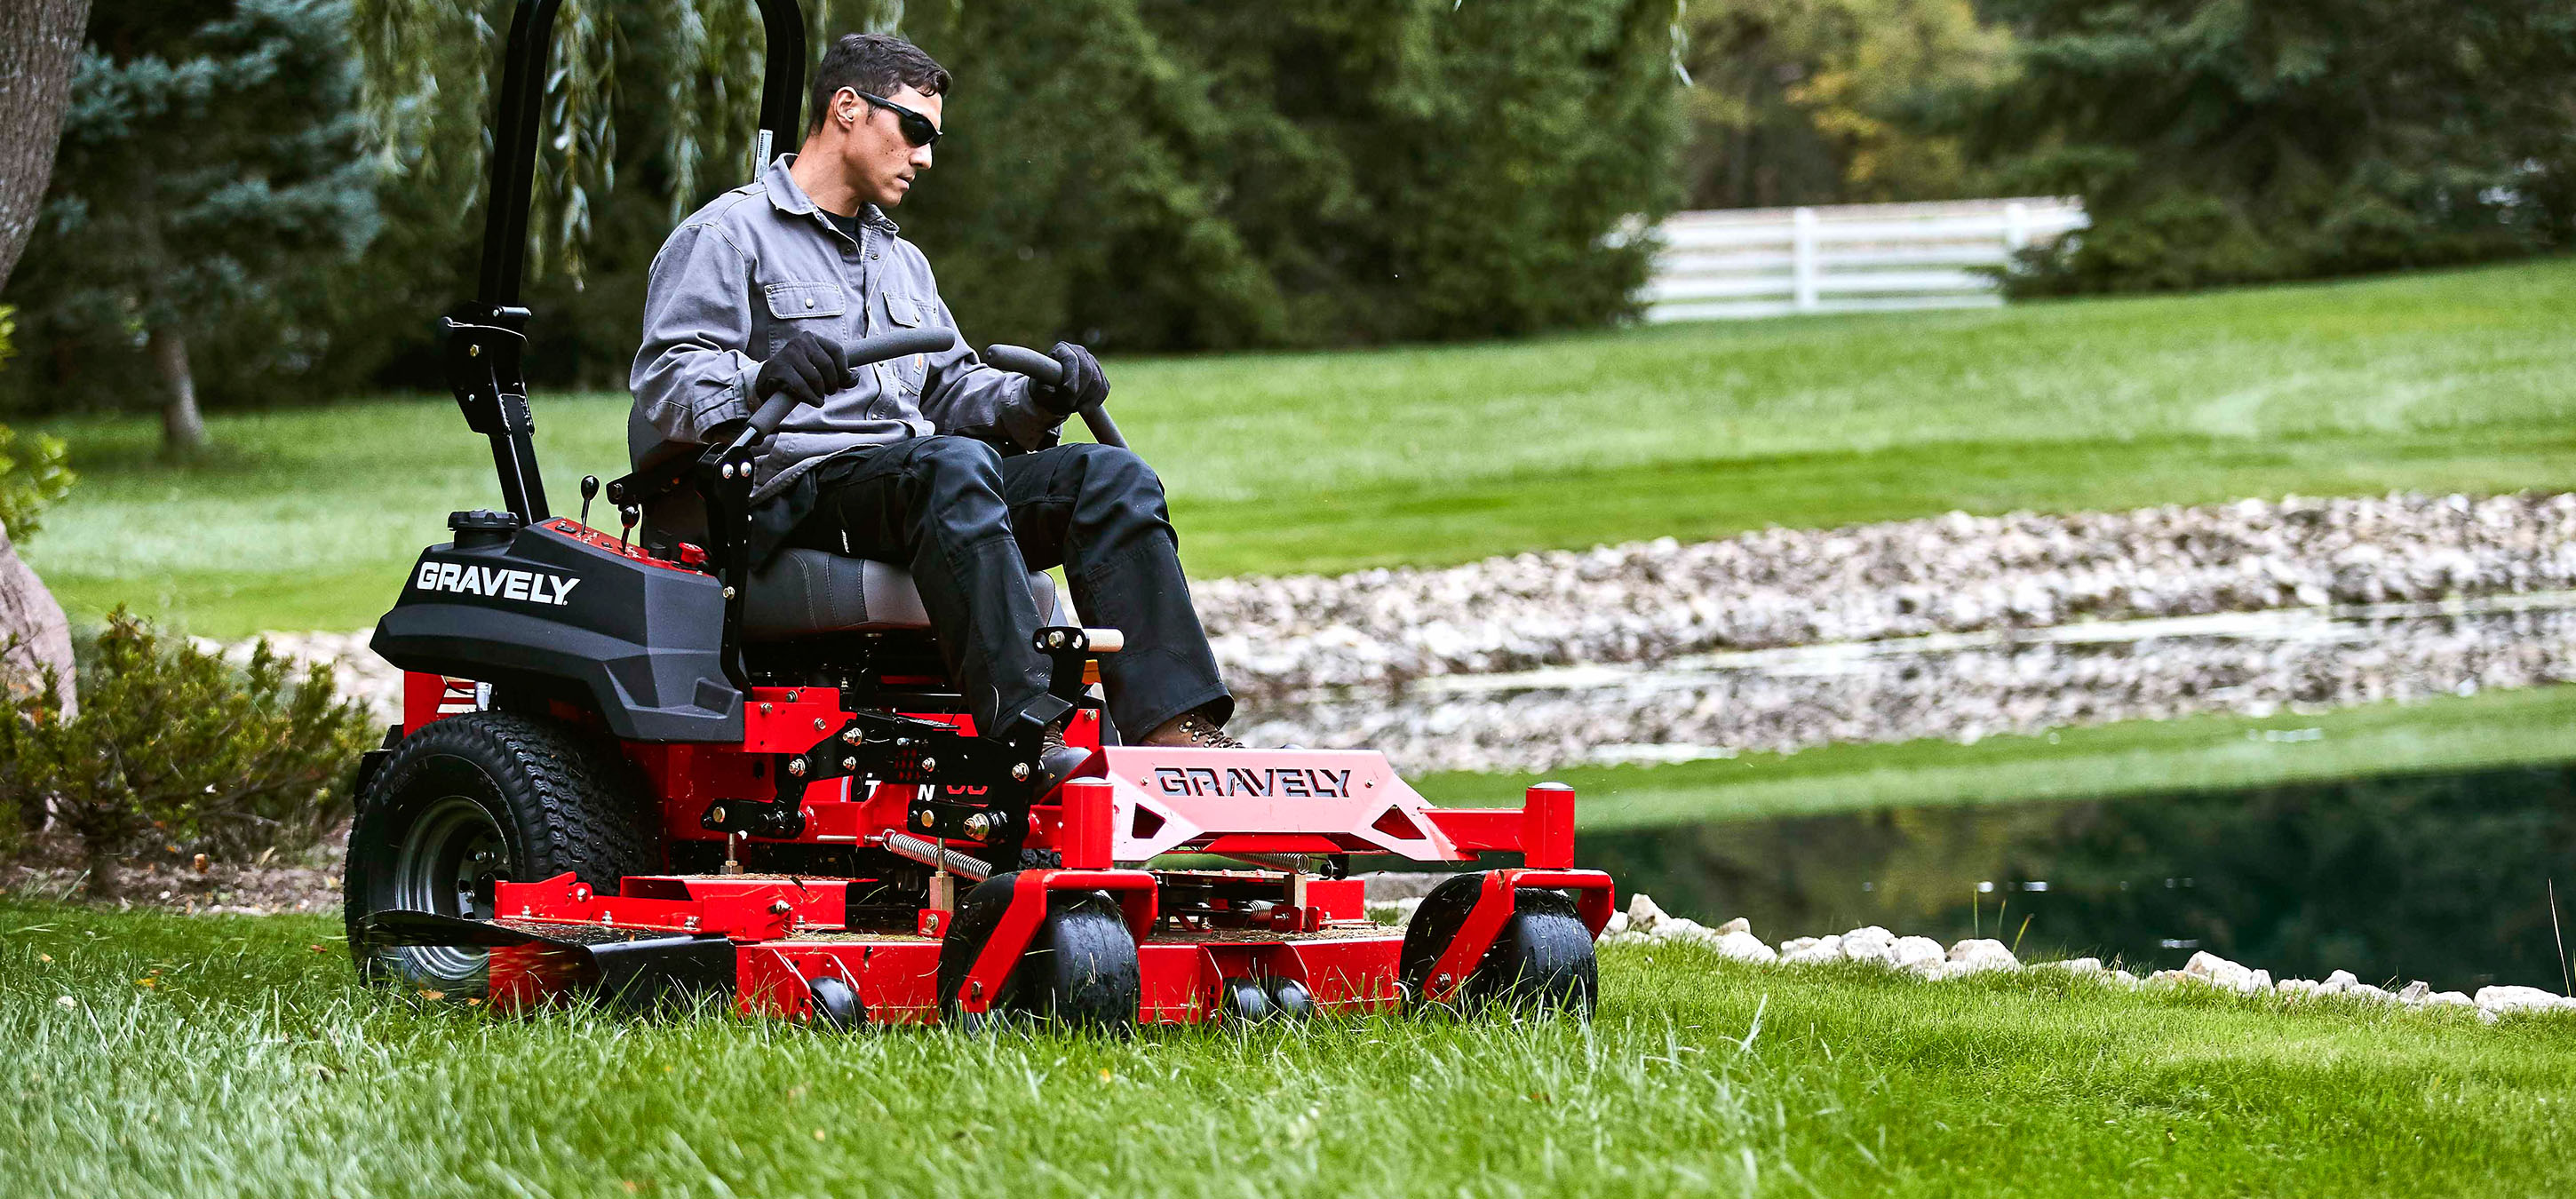 Gravely Pro Turn Mower near pond in Lancast, NH